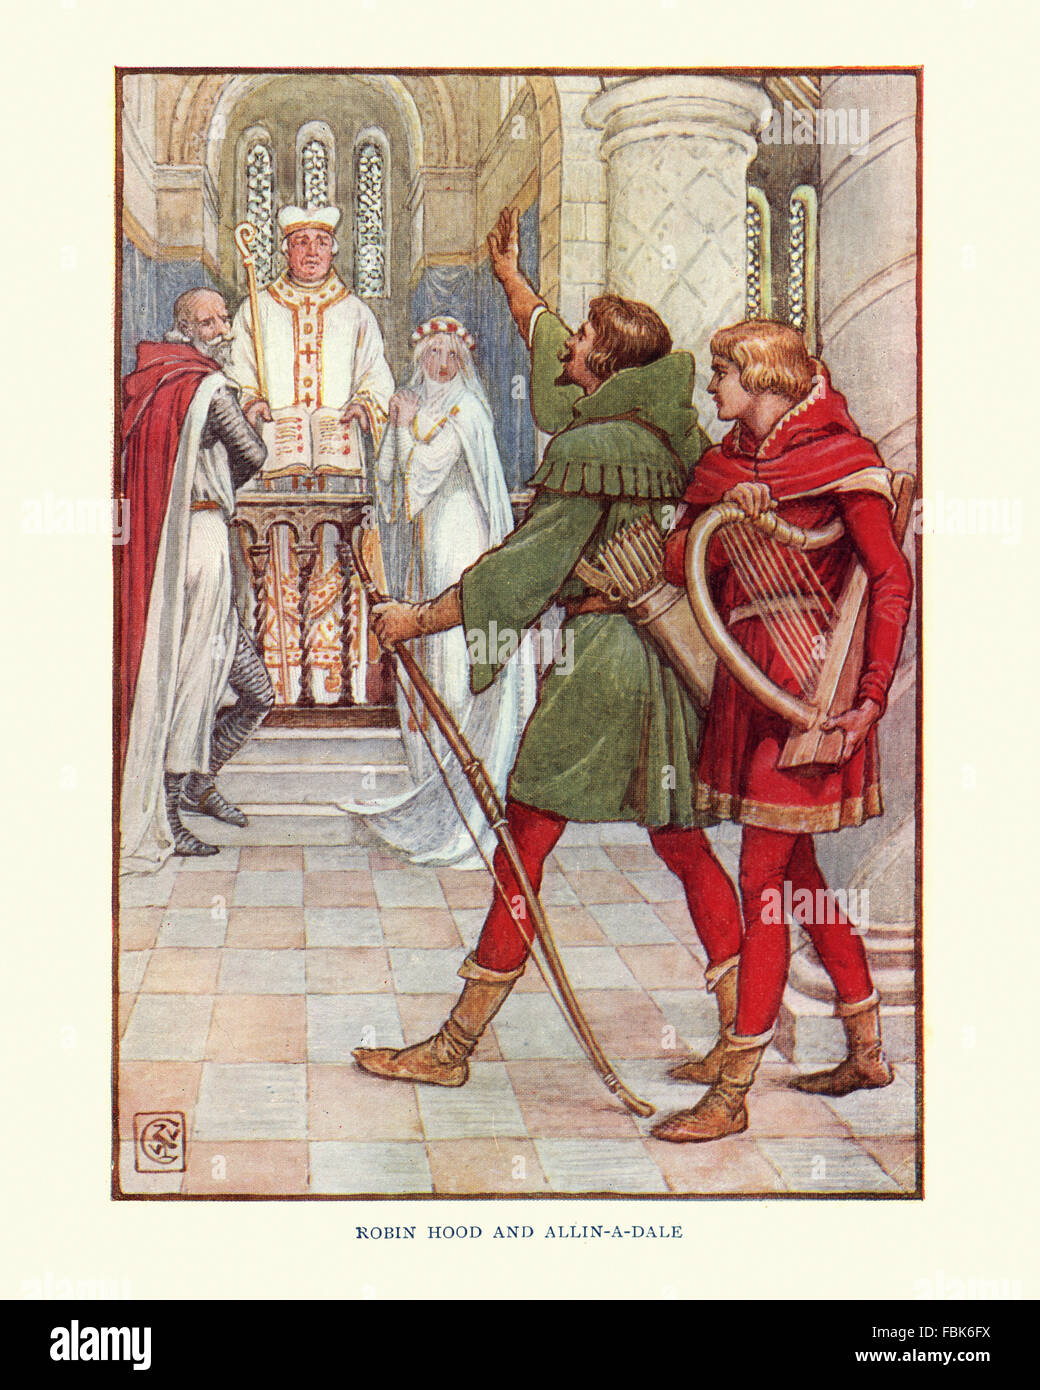 Illustration from the story of Robin Hood. Robin Hood and Alan-a-Dale. By Walter Crane - Stock Image